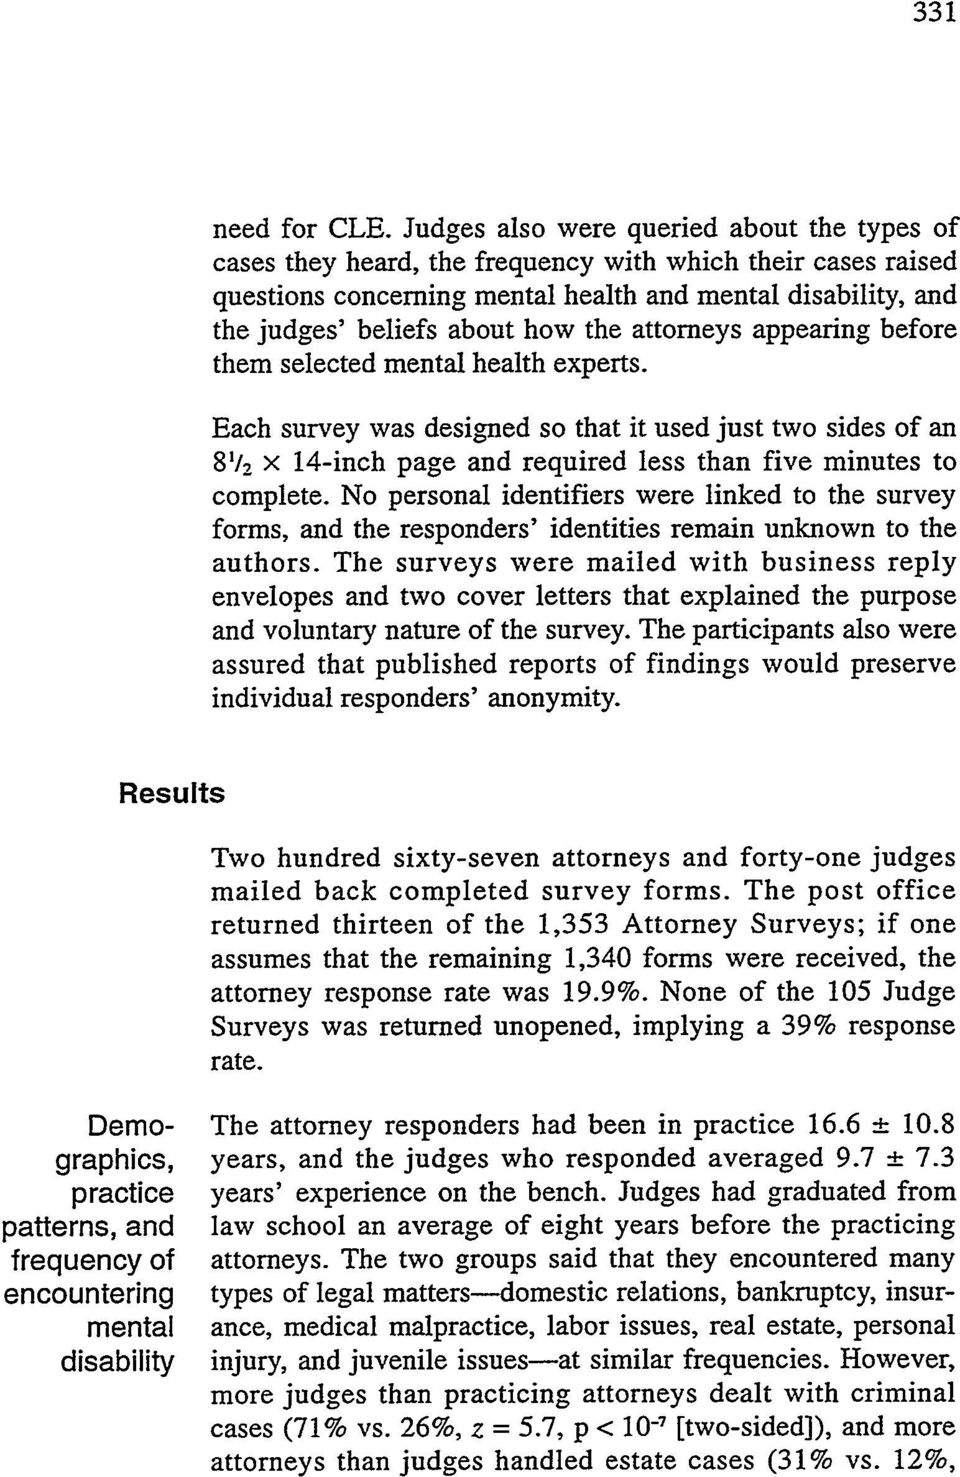 the attorneys appearing before them selected mental health experts. Each survey was designed so that it used just two sides of an 81/2 x 14-inch page and required less than five minutes to complete.